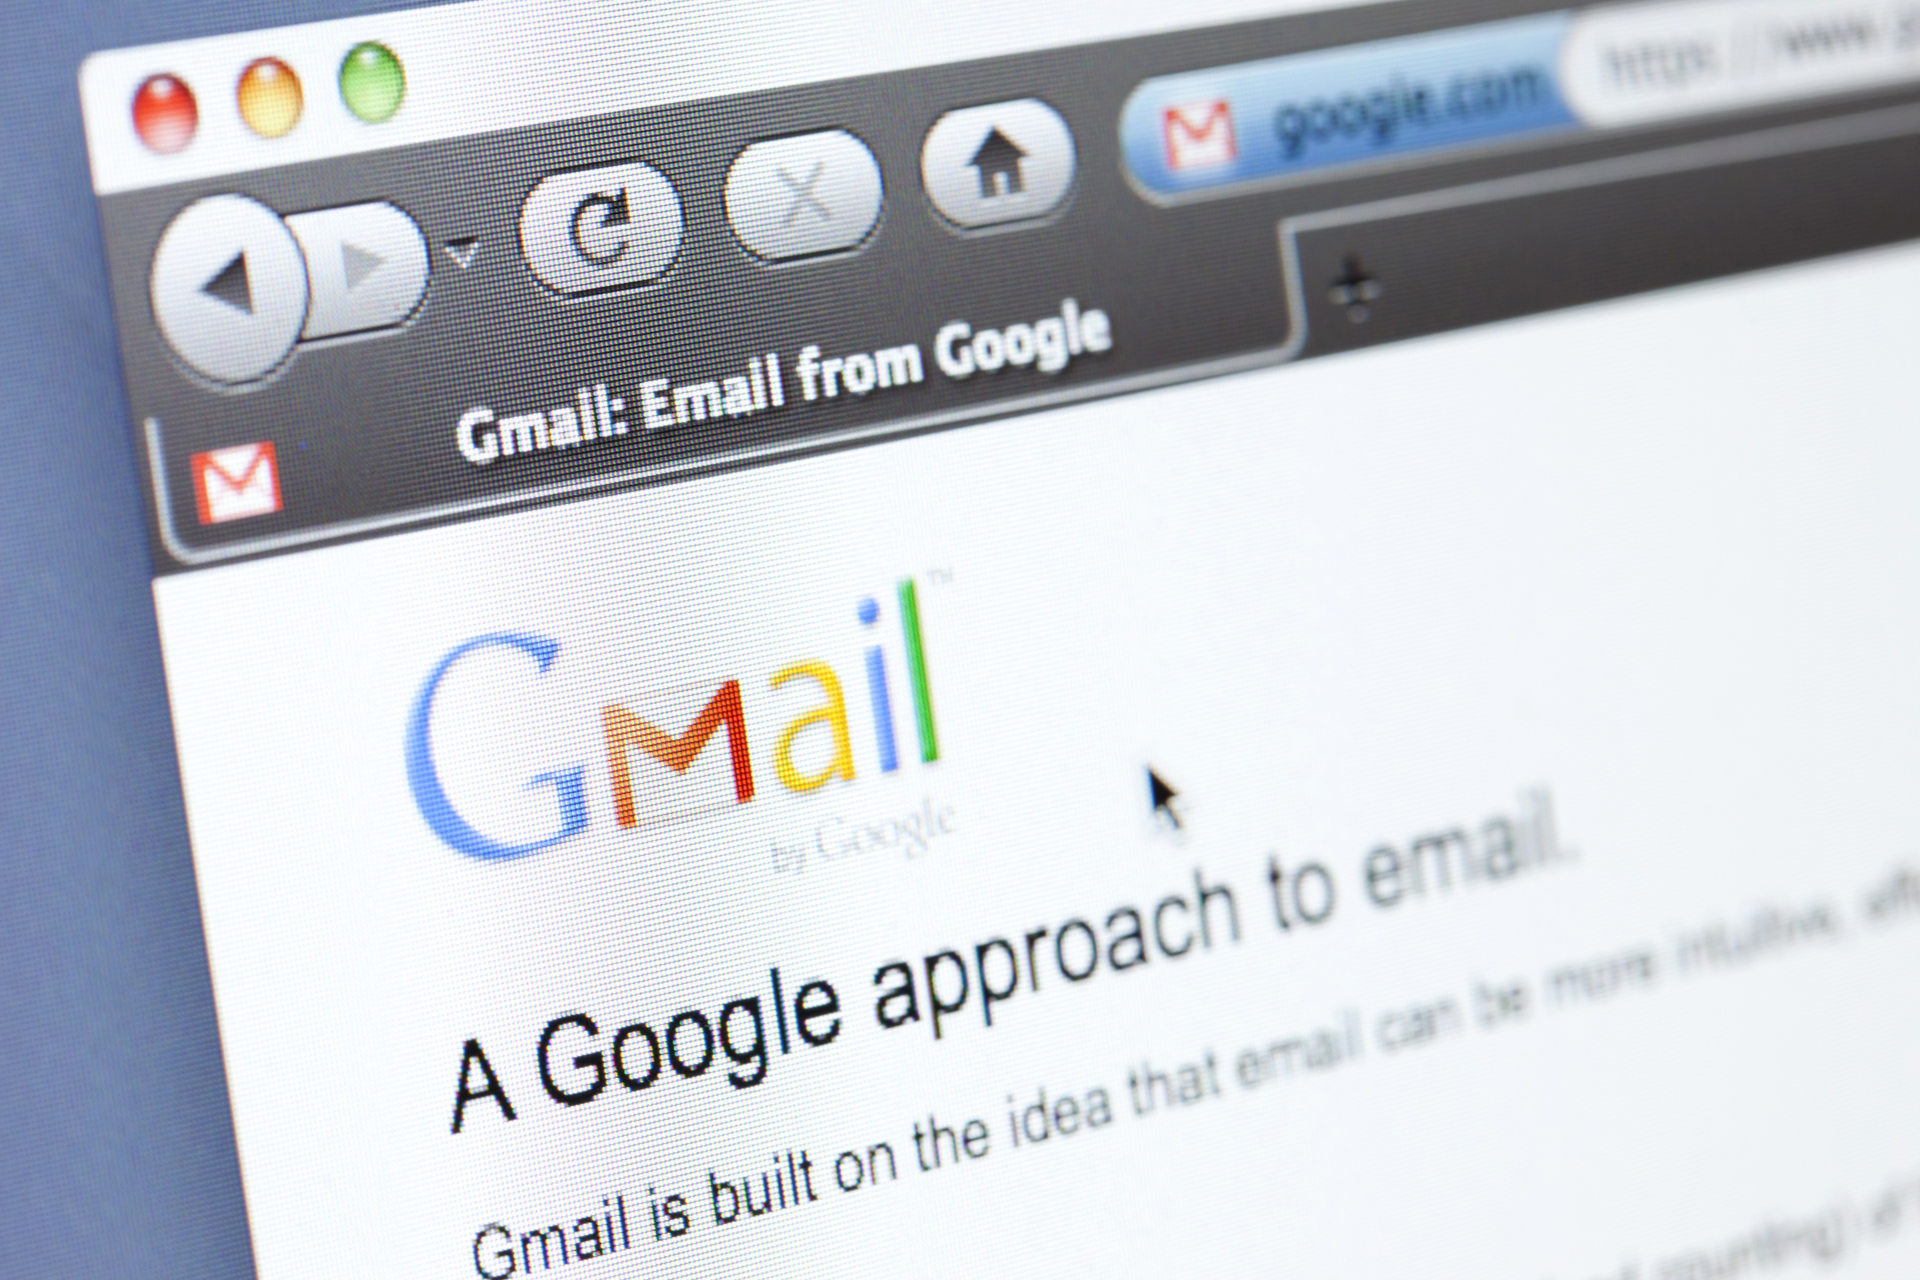 Google: Apps can scan and share your Gmail data, with consent